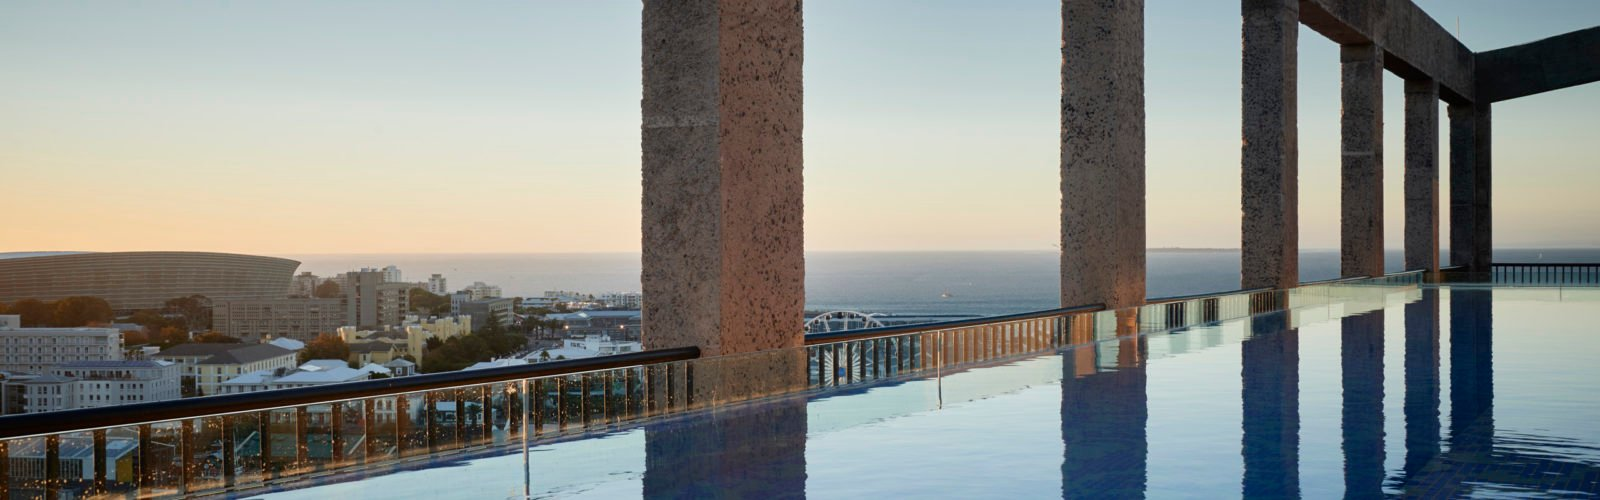 The pool and view at The Silo, Cape Town, South Africa